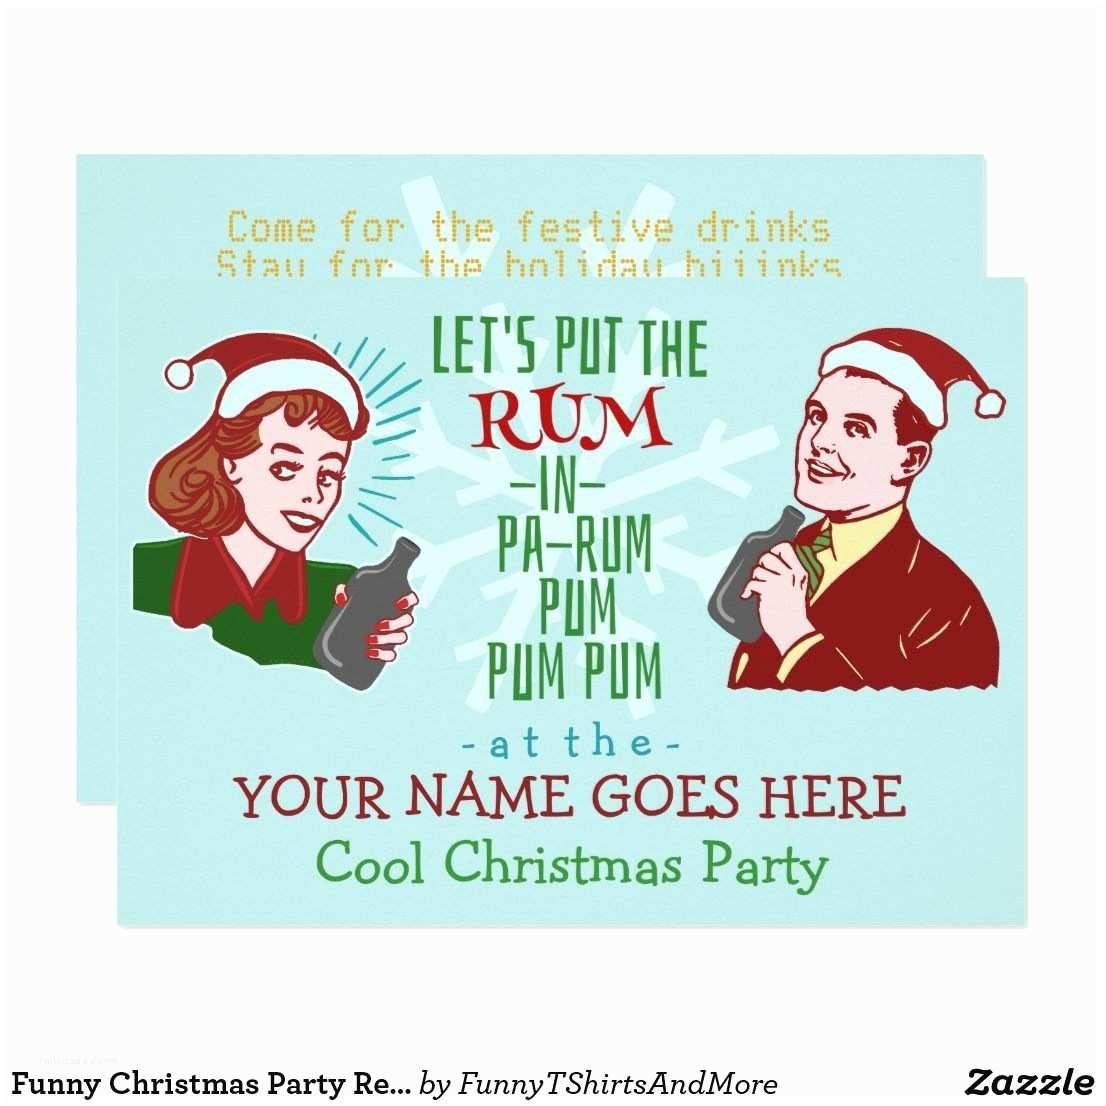 Funny Holiday Party Invitations Funny Christmas Party Retro Rum Adult Holiday V2 Card